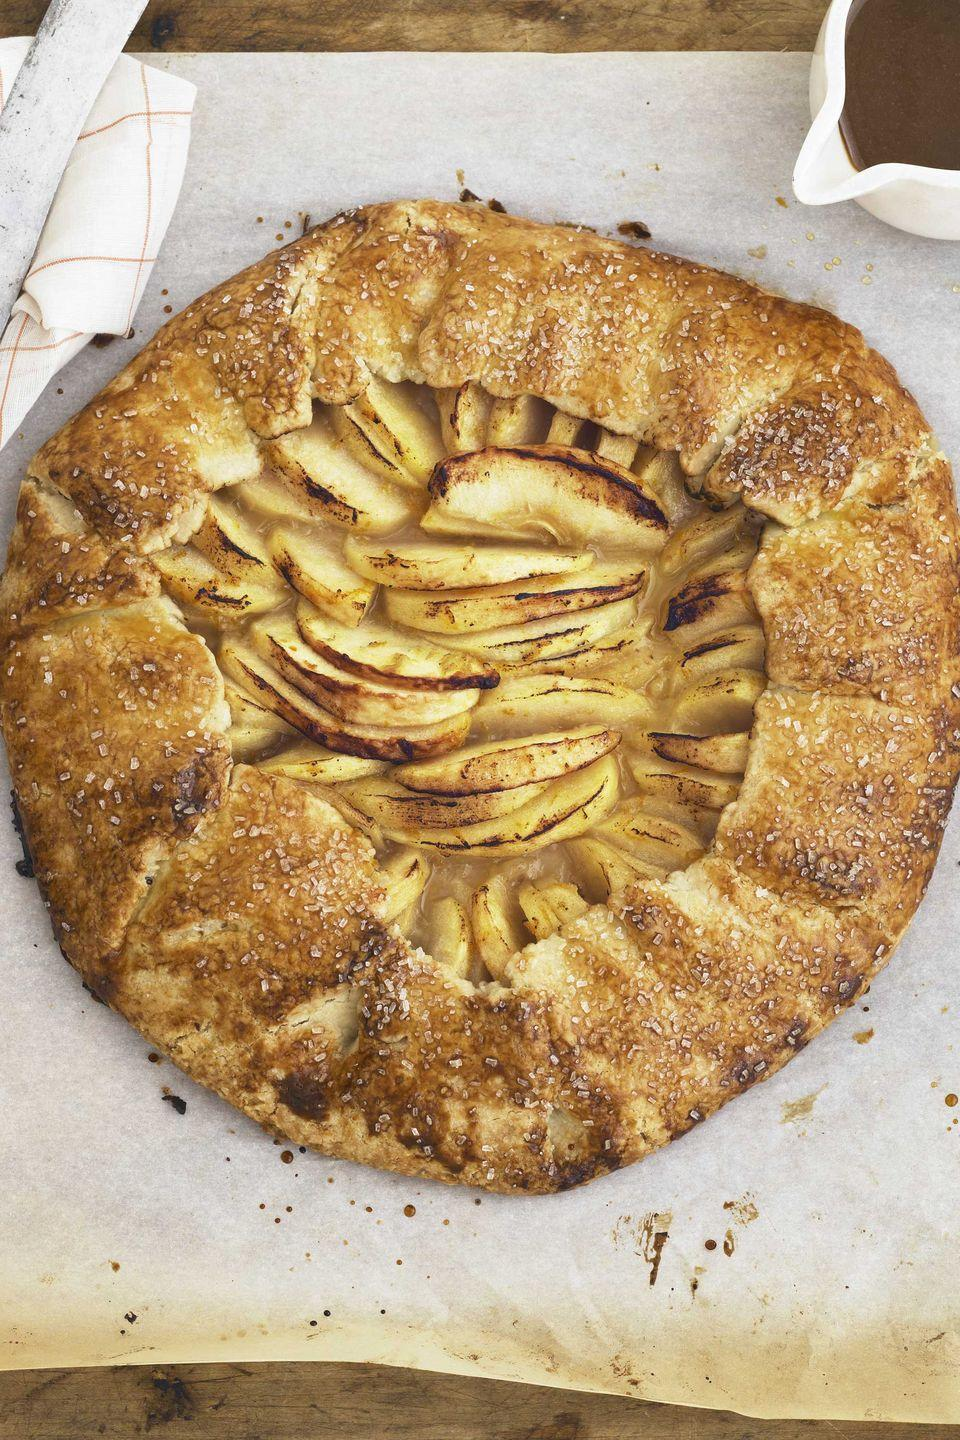 "<p>Butterscotch sauce and a spike Grand Marnier transforms this classic fall dessert into an irresistible delight. </p><p><strong><a href=""https://www.countryliving.com/food-drinks/recipes/a3454/rustic-apple-galette-recipe-clv0910/"" rel=""nofollow noopener"" target=""_blank"" data-ylk=""slk:Get the recipe"" class=""link rapid-noclick-resp"">Get the recipe</a>.</strong></p>"